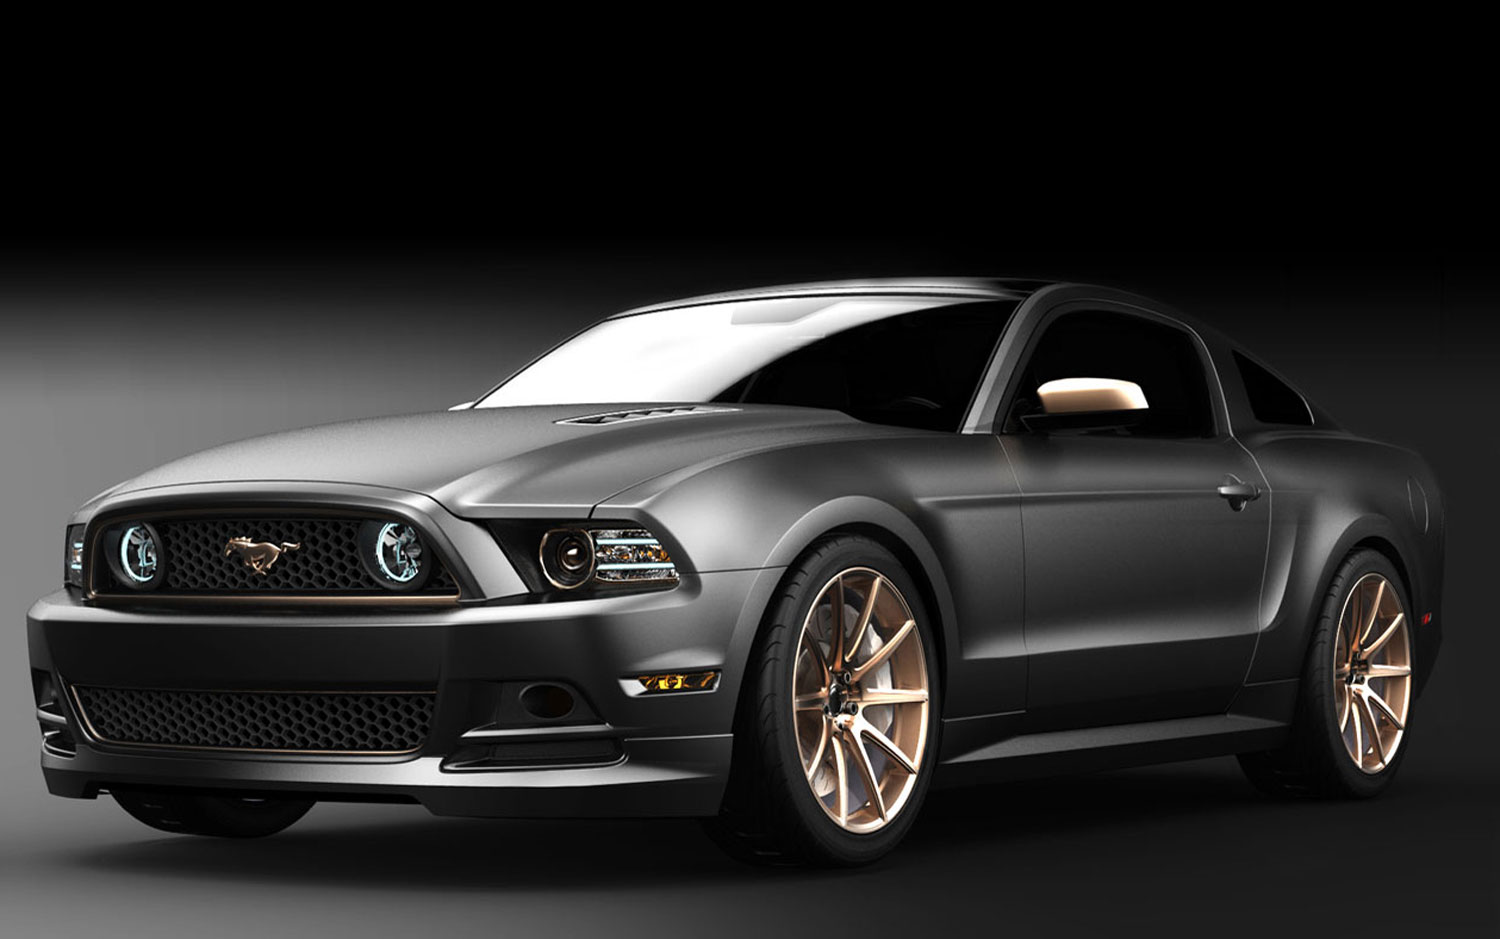 cars model 2013 2014 2013 ford mustang gt. Black Bedroom Furniture Sets. Home Design Ideas